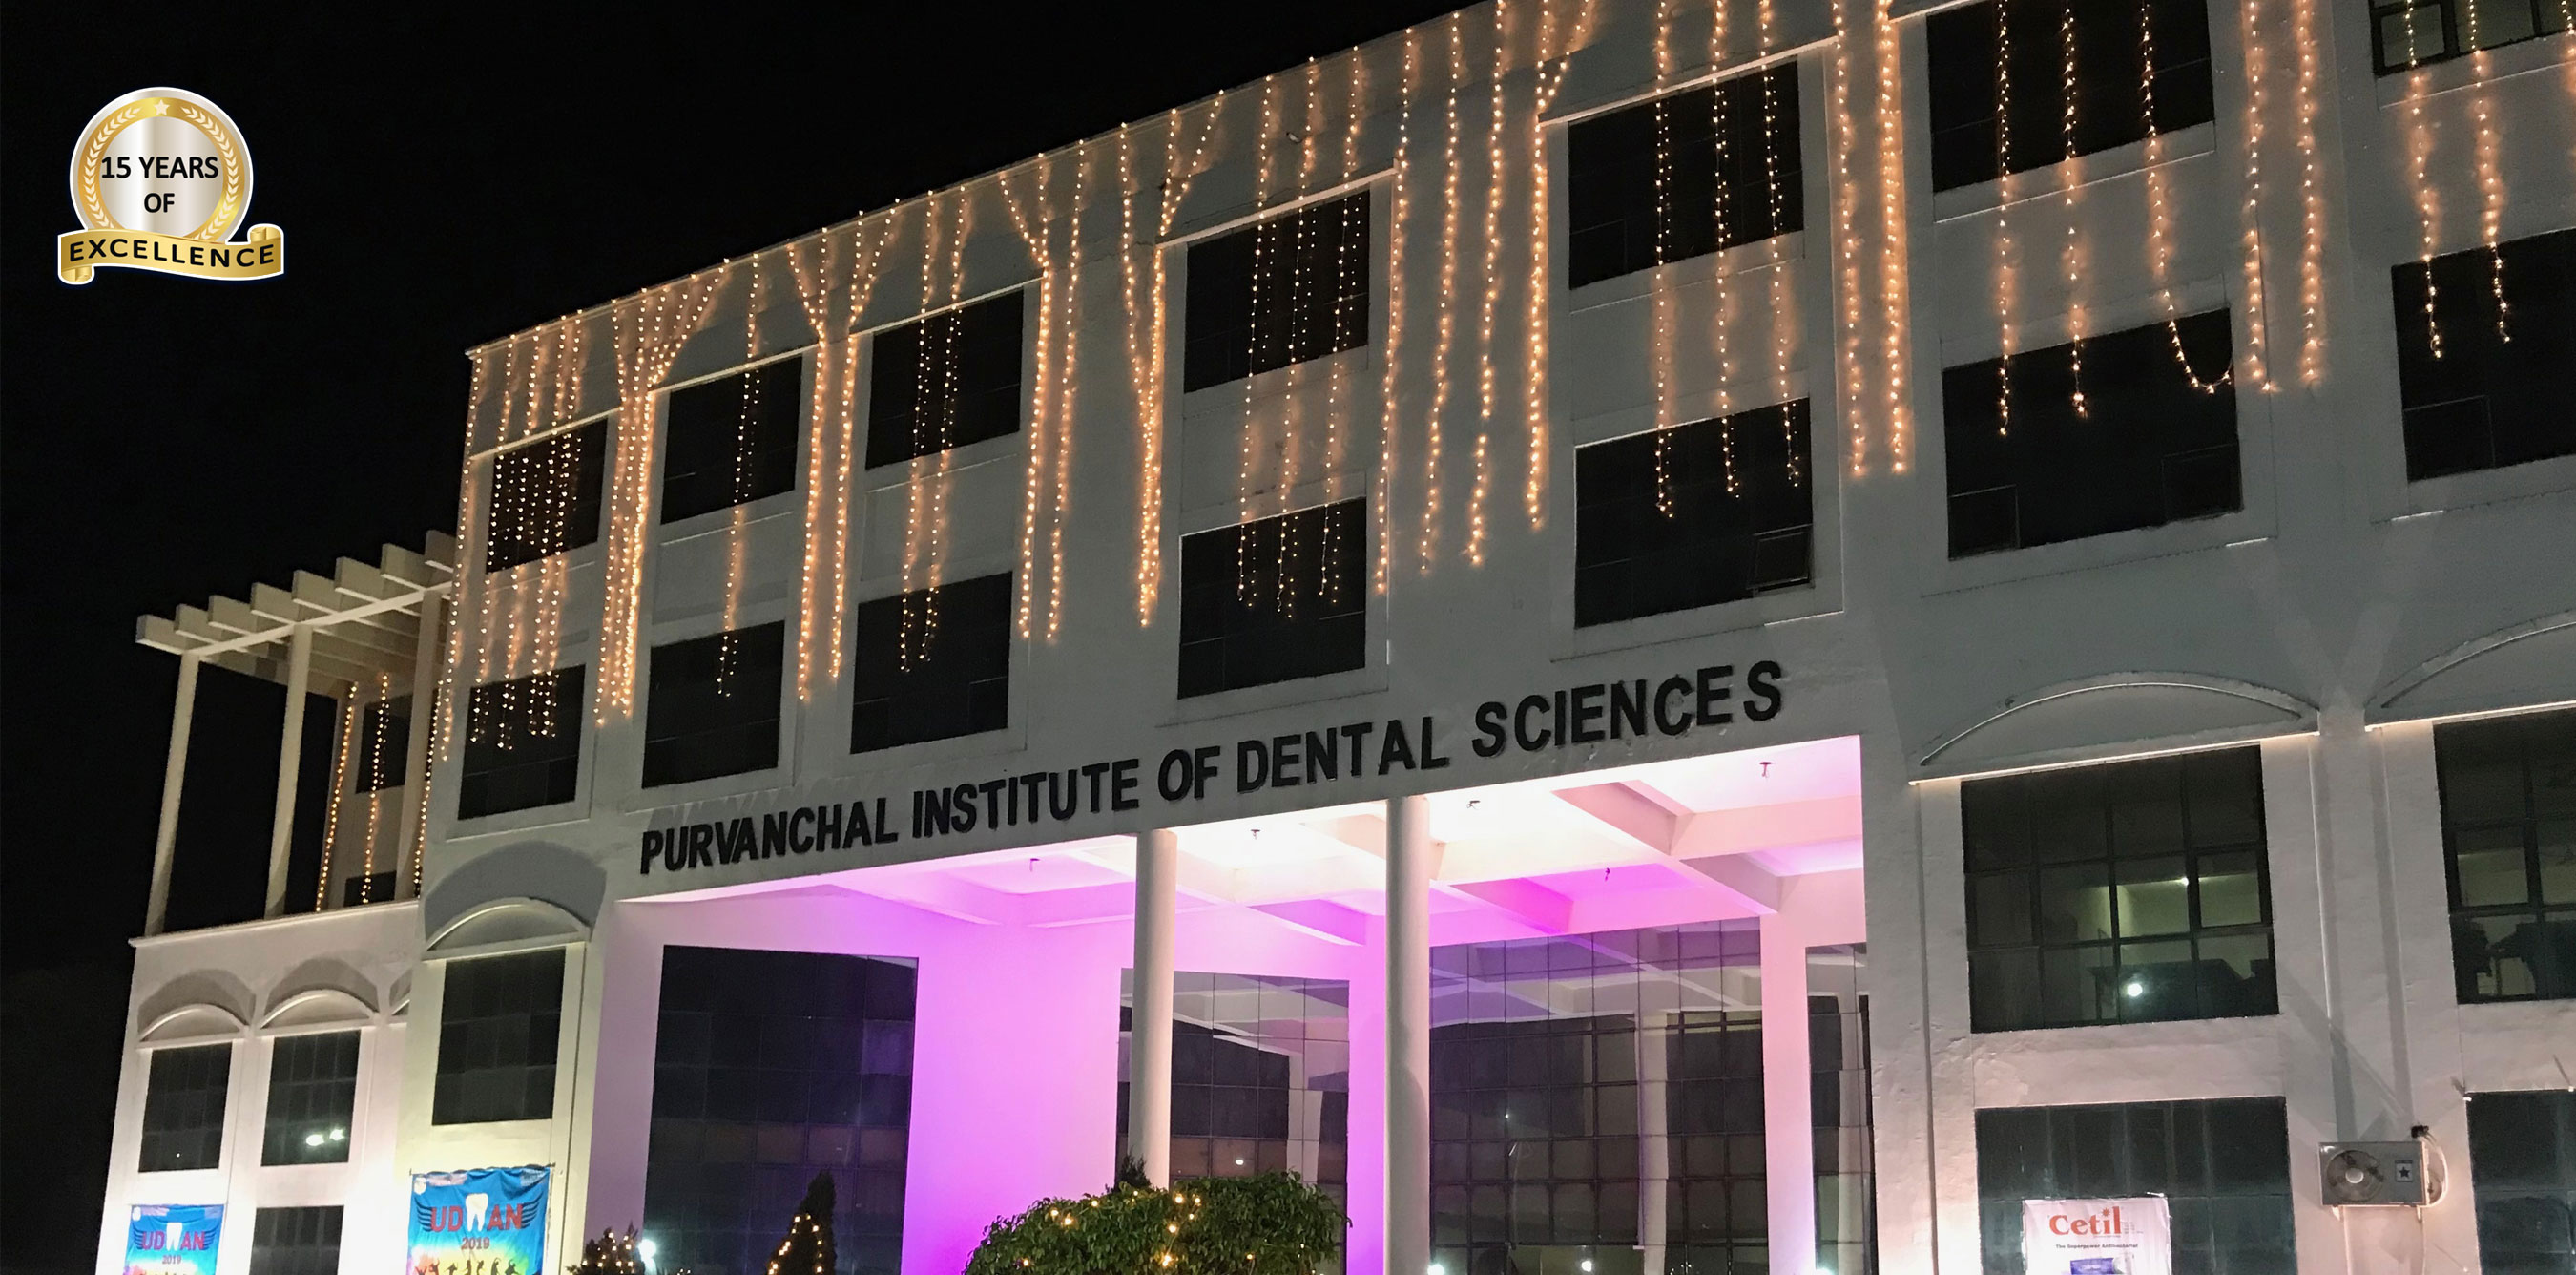 Purvanchal Institute of Dental Sciences Gorakhpur